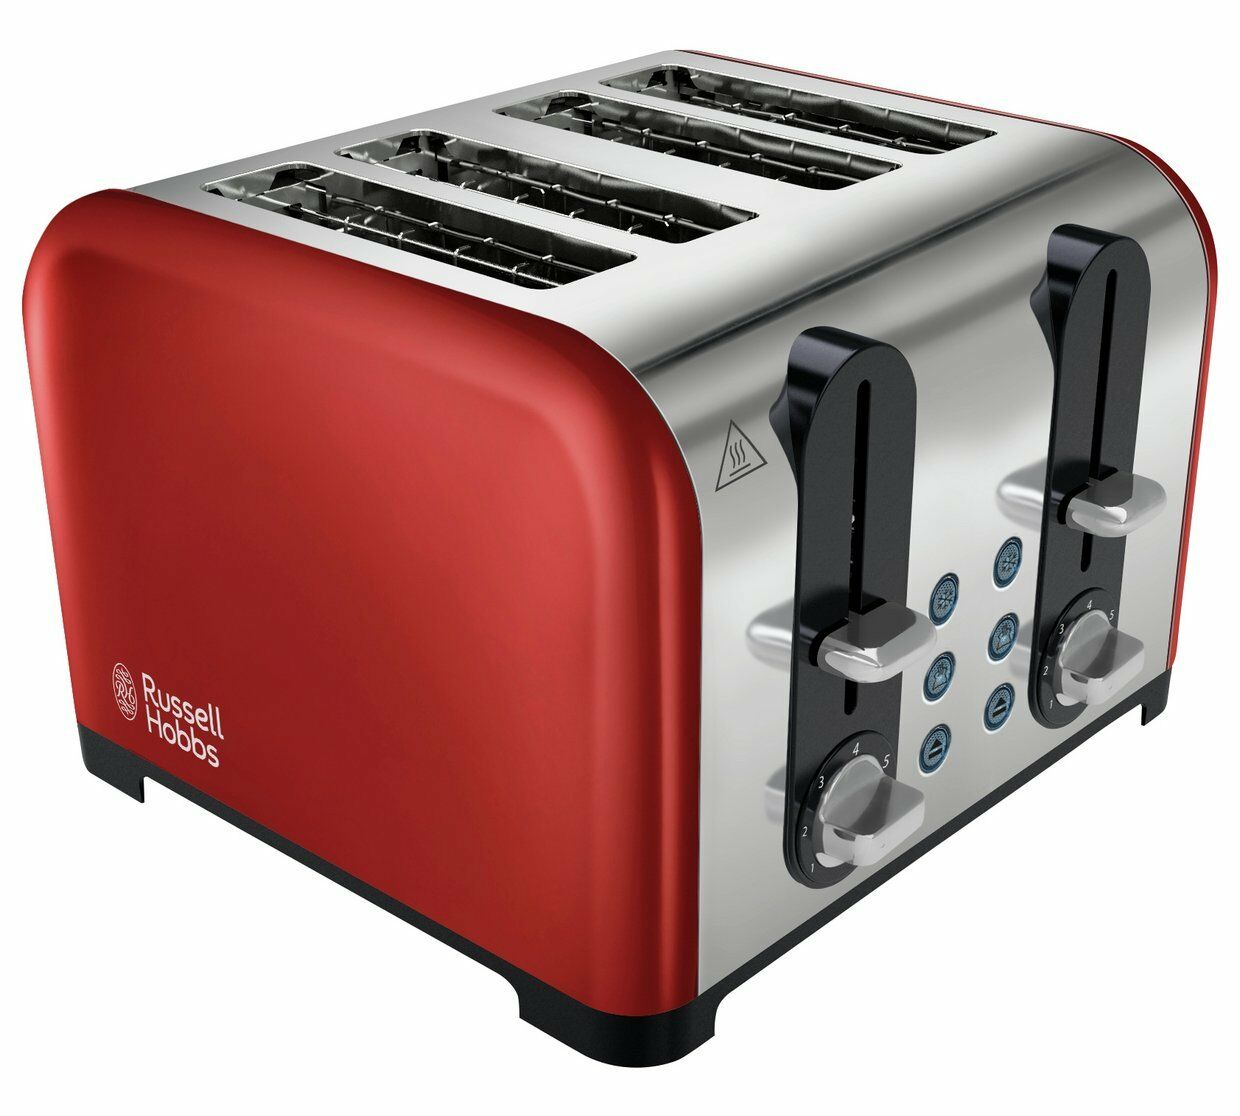 Brand New Russell Hobbs Westminster 4 Slice Toaster - Red Multi Functional